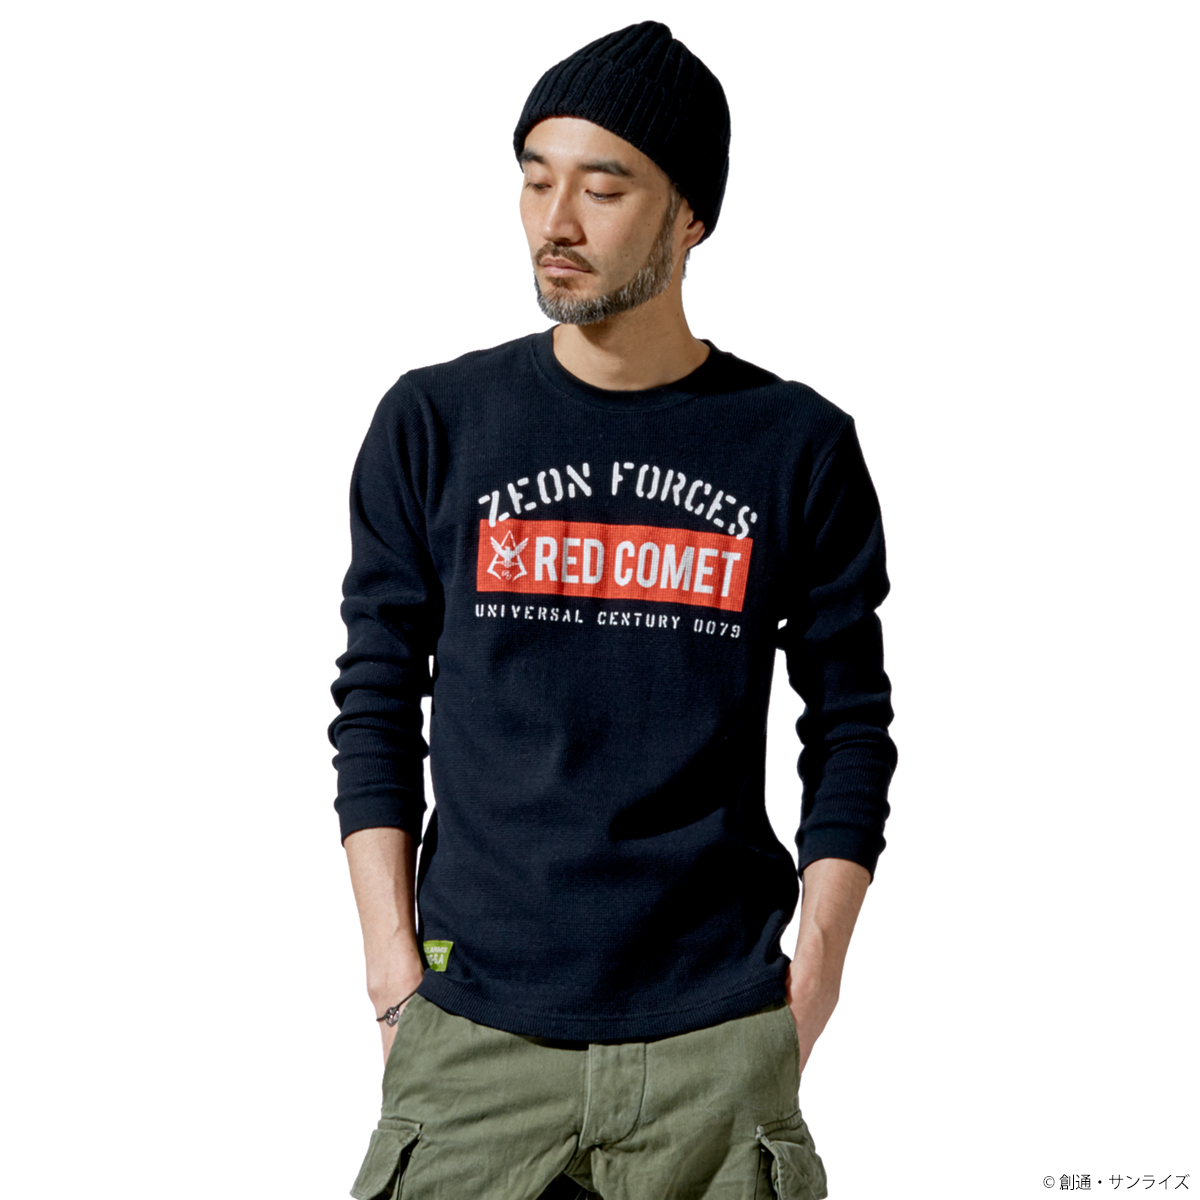 STRICT-G.ARMS『機動戦士ガンダム』ワッフル長袖Tシャツ RED COMET